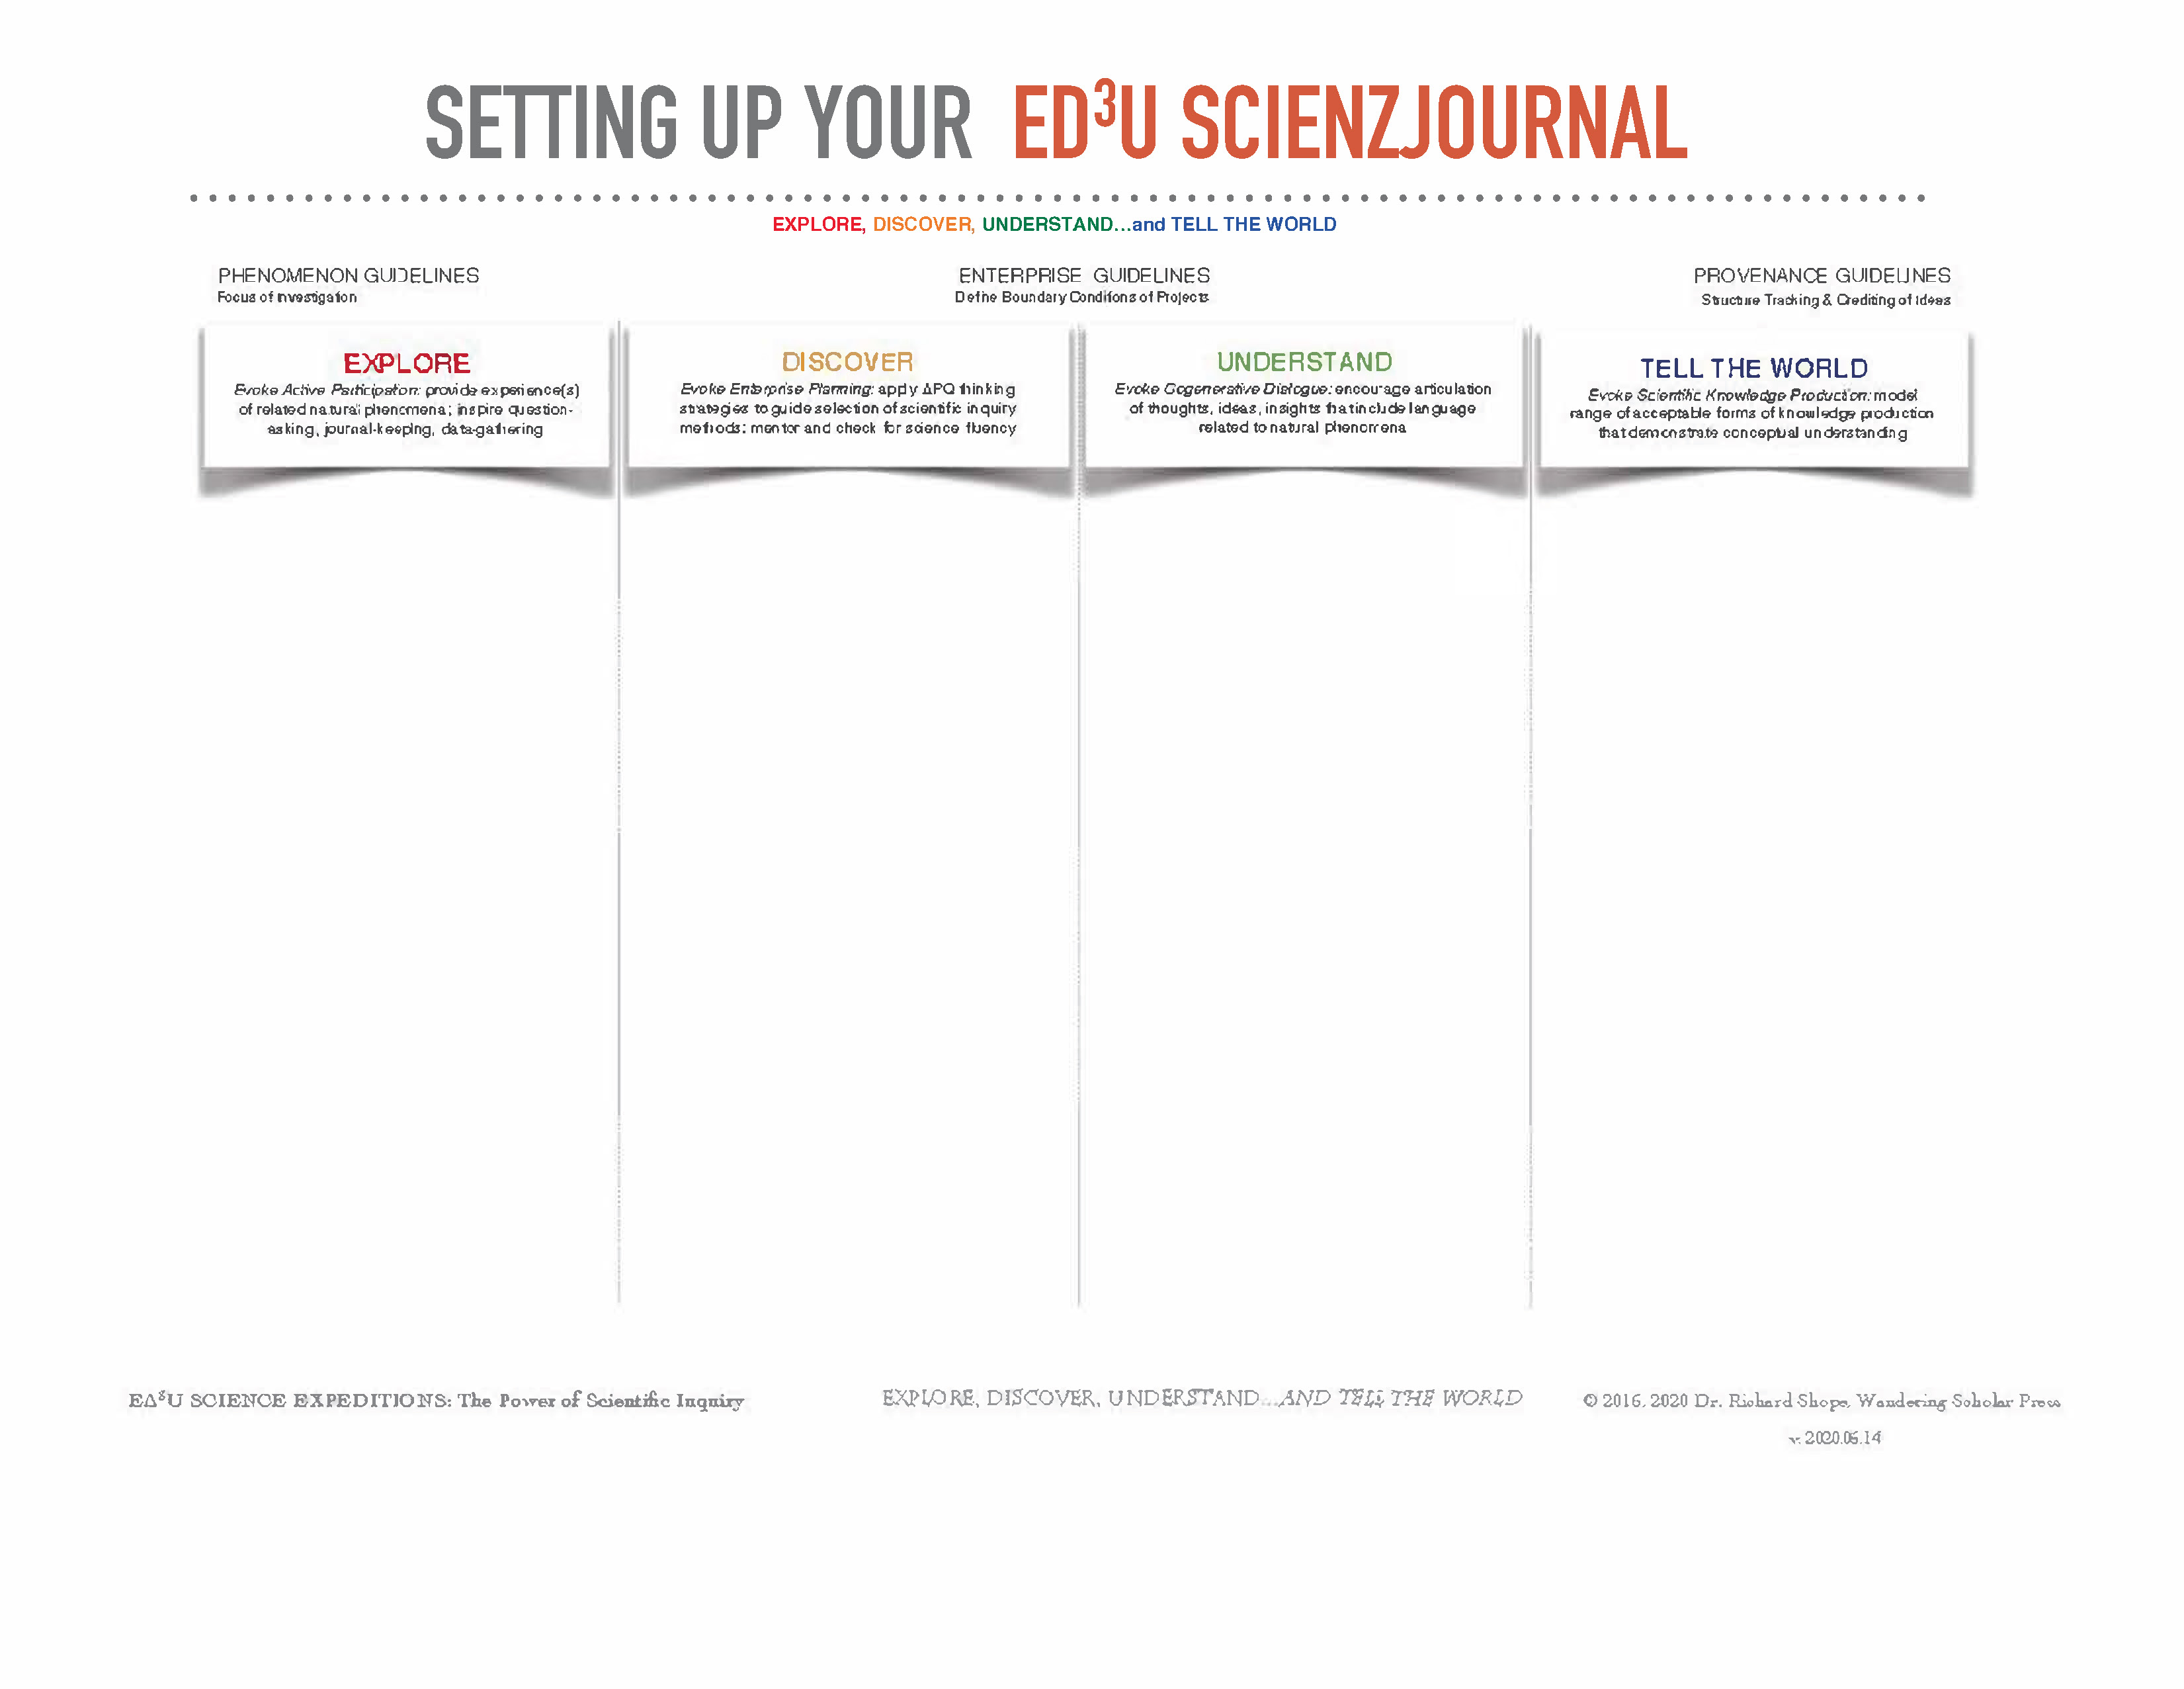 MimeWrighting 201: Set Up Your ScienZjournal